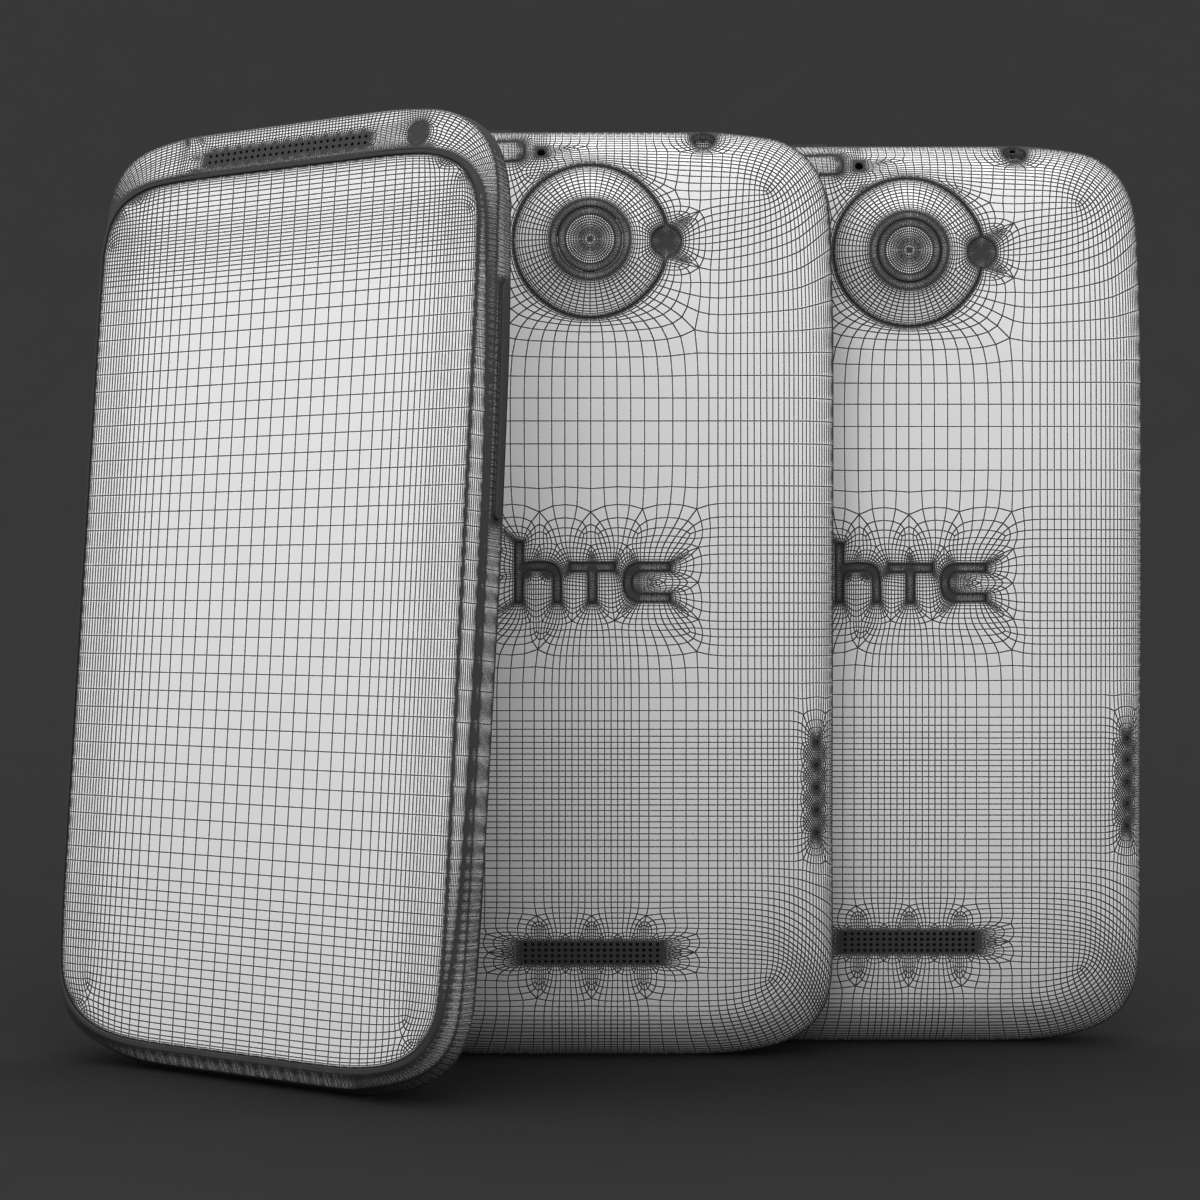 htc one x+ black and white 3d model 3ds max fbx c4d lwo obj 151433